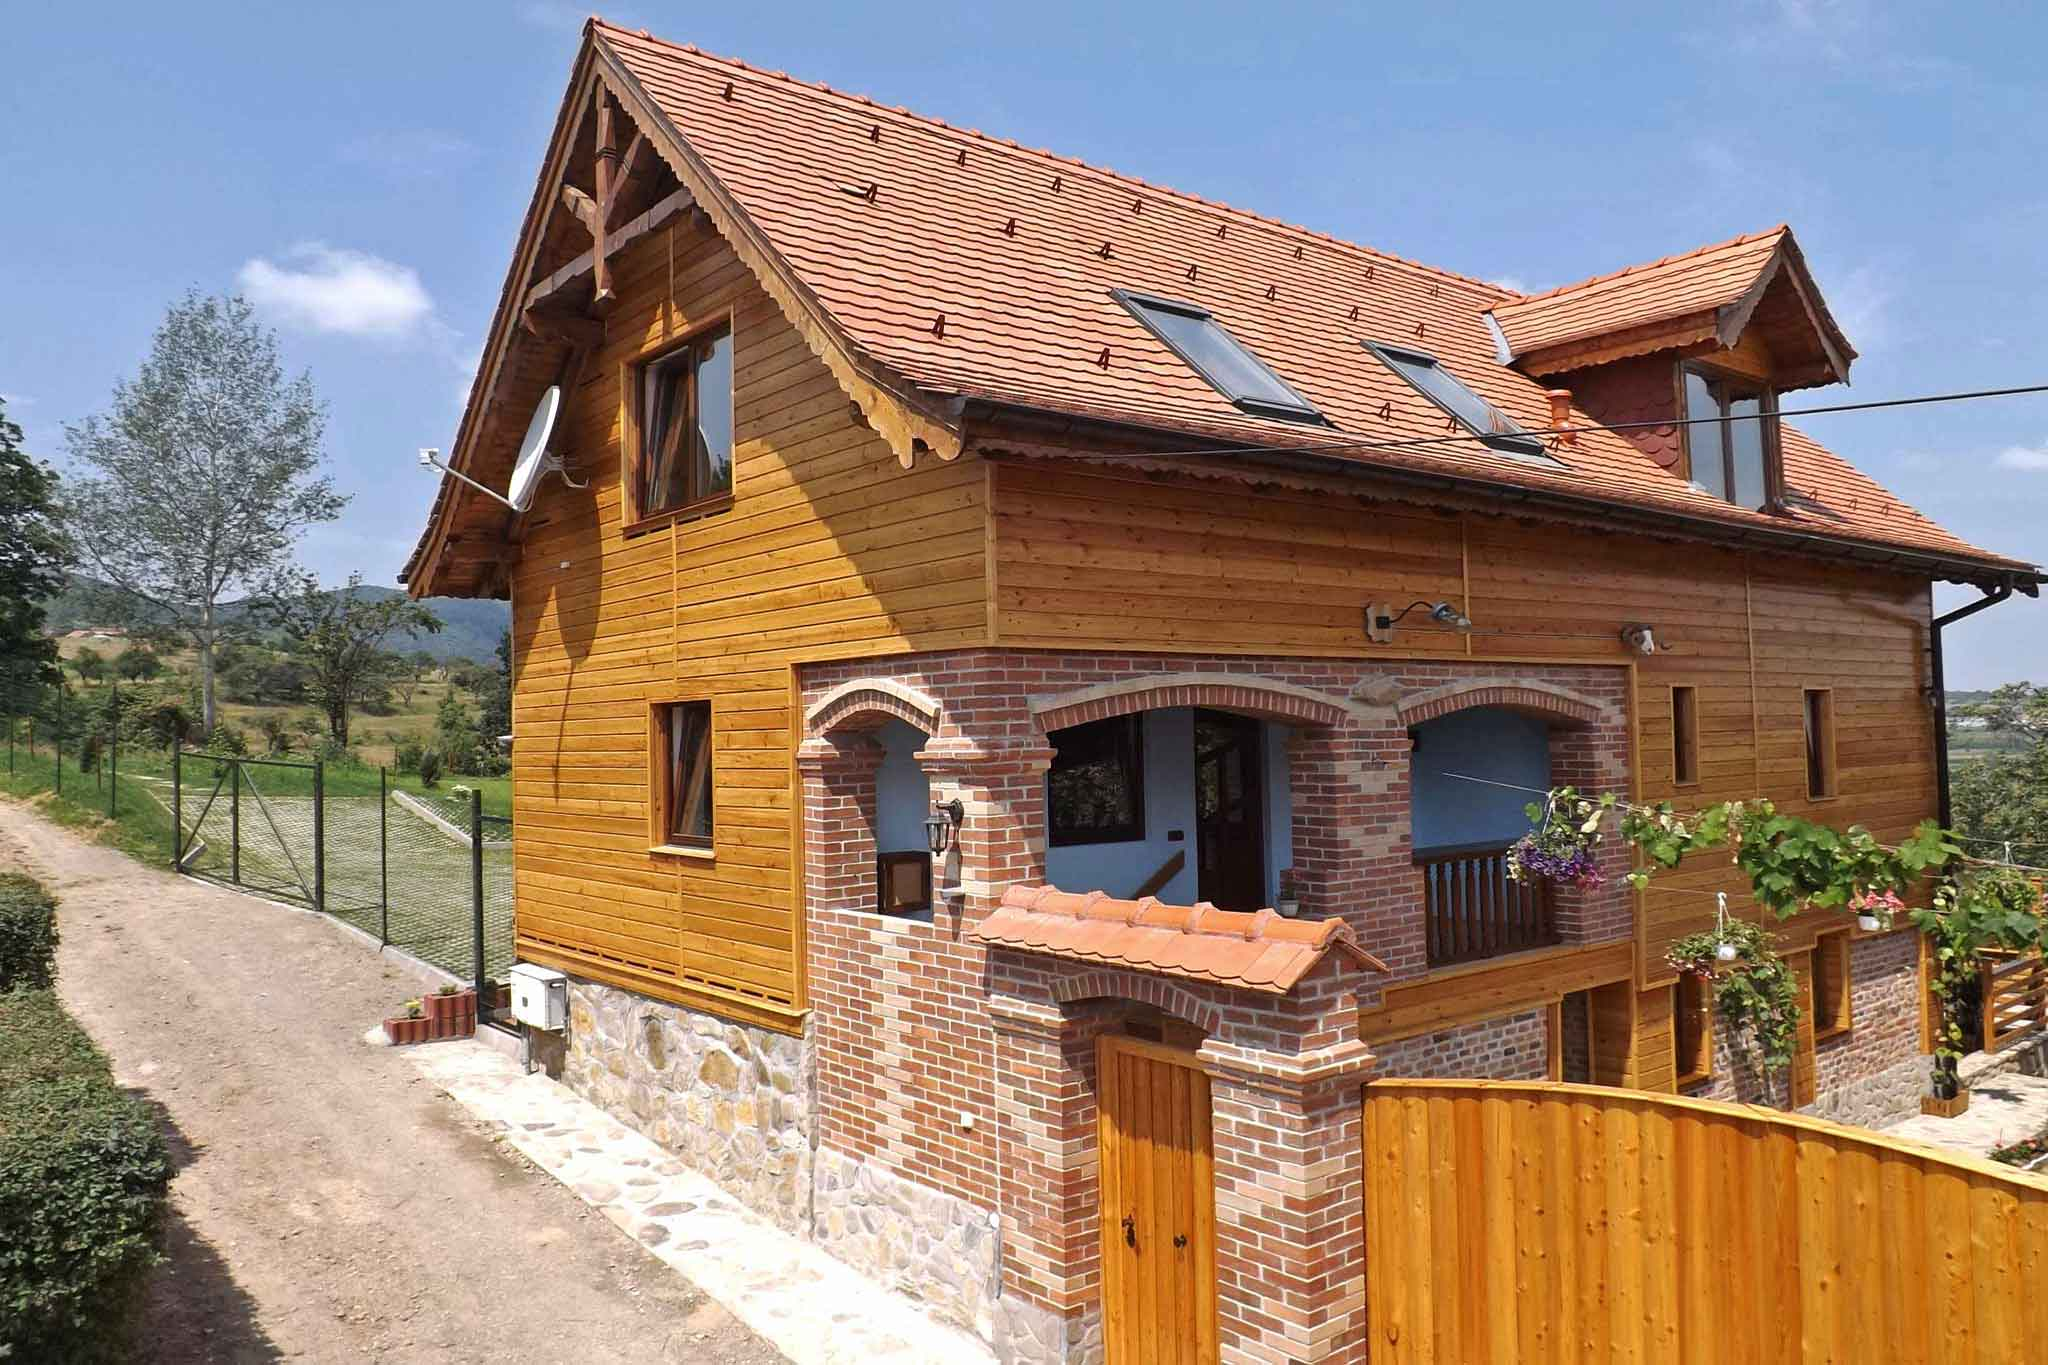 holiday studio romania apartments for couples holidays sibiu